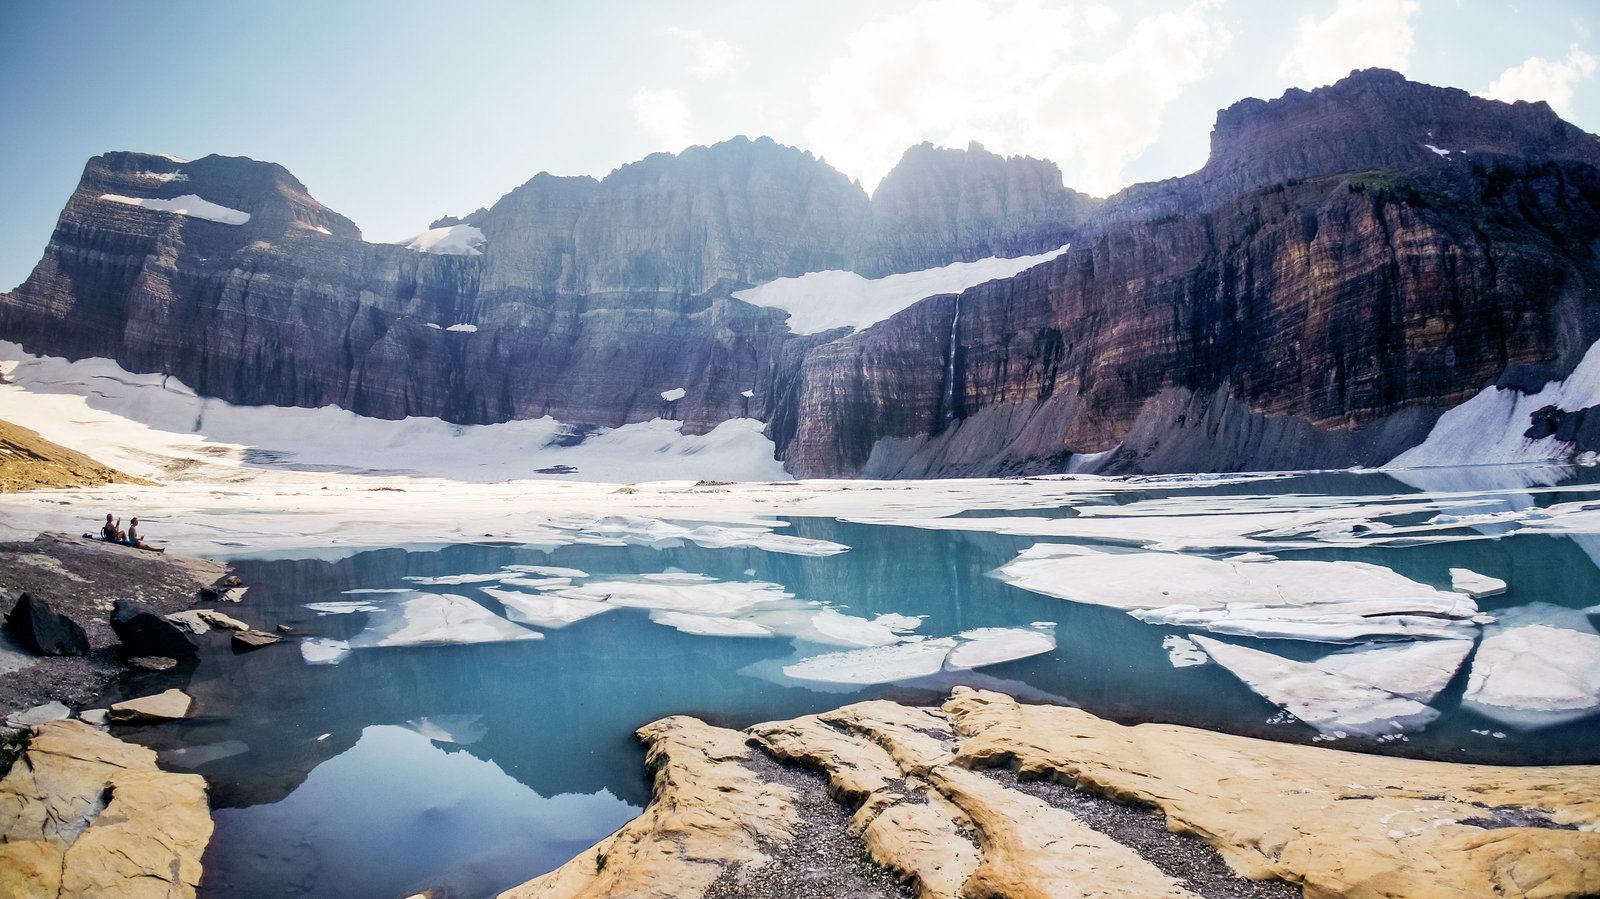 Sasha_Reiko_Photography_Travel_Glacier_National_Park-4